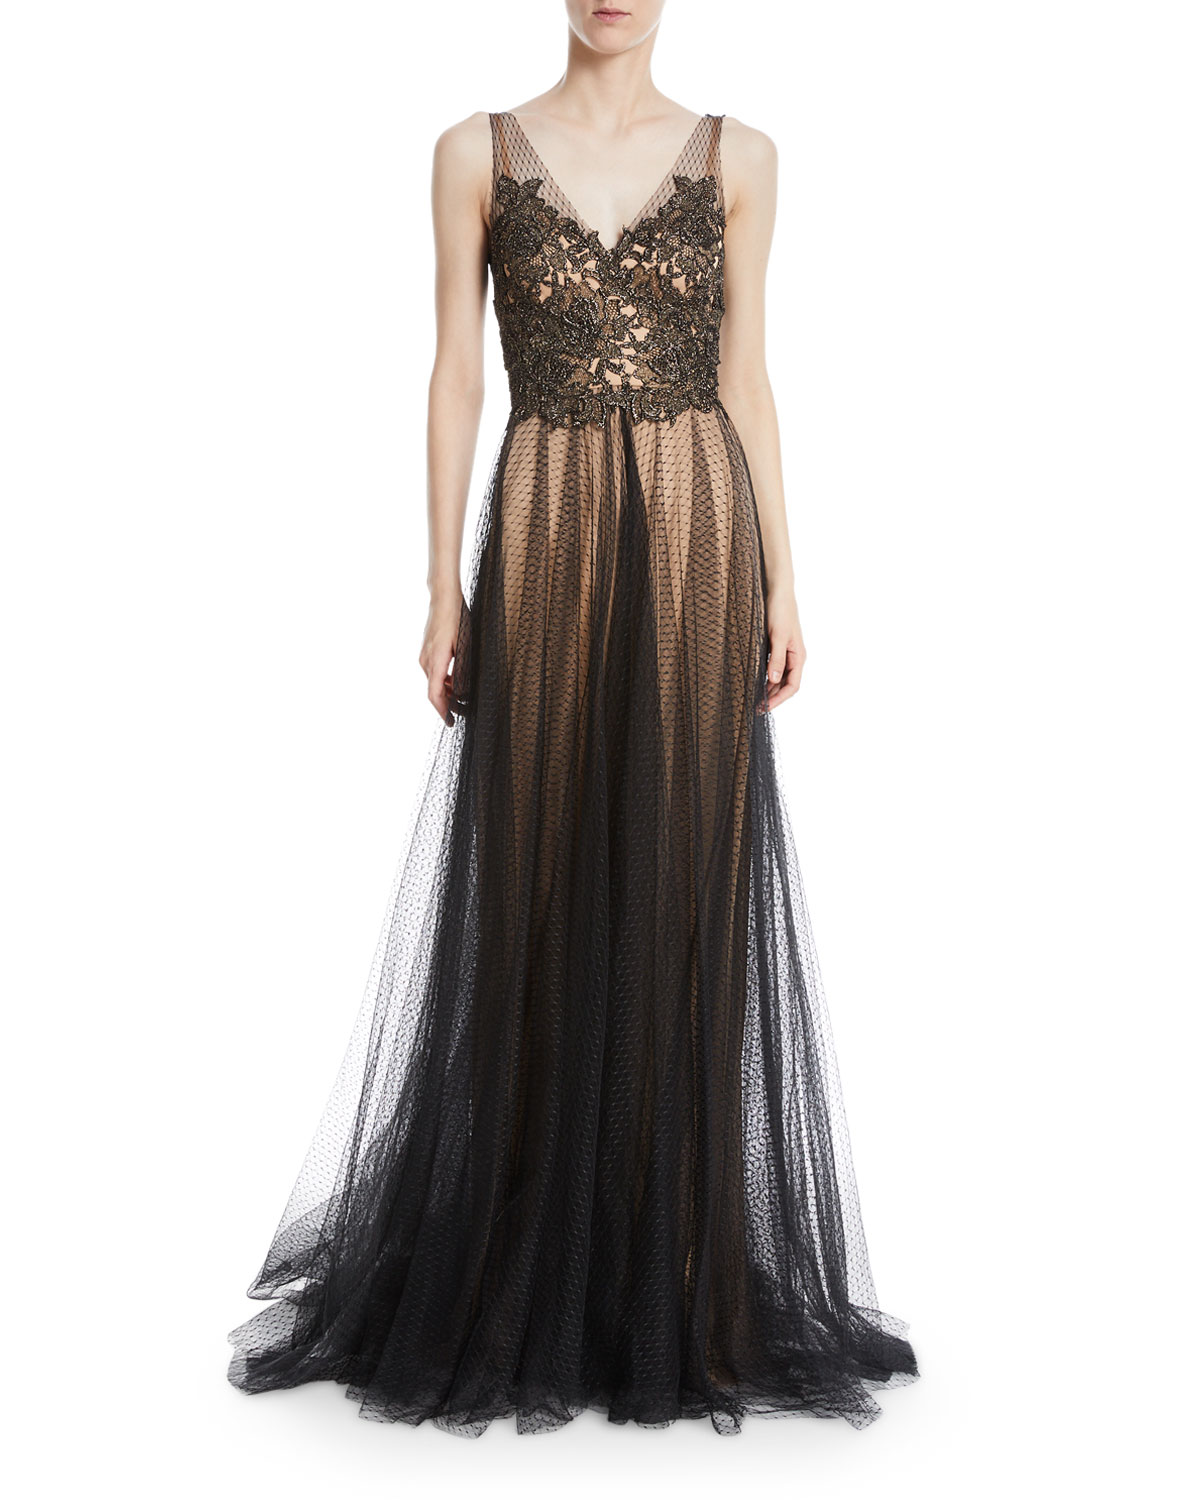 CATHERINE DEANE KNIGHT METALLIC V-NECK TRUMPET GOWN